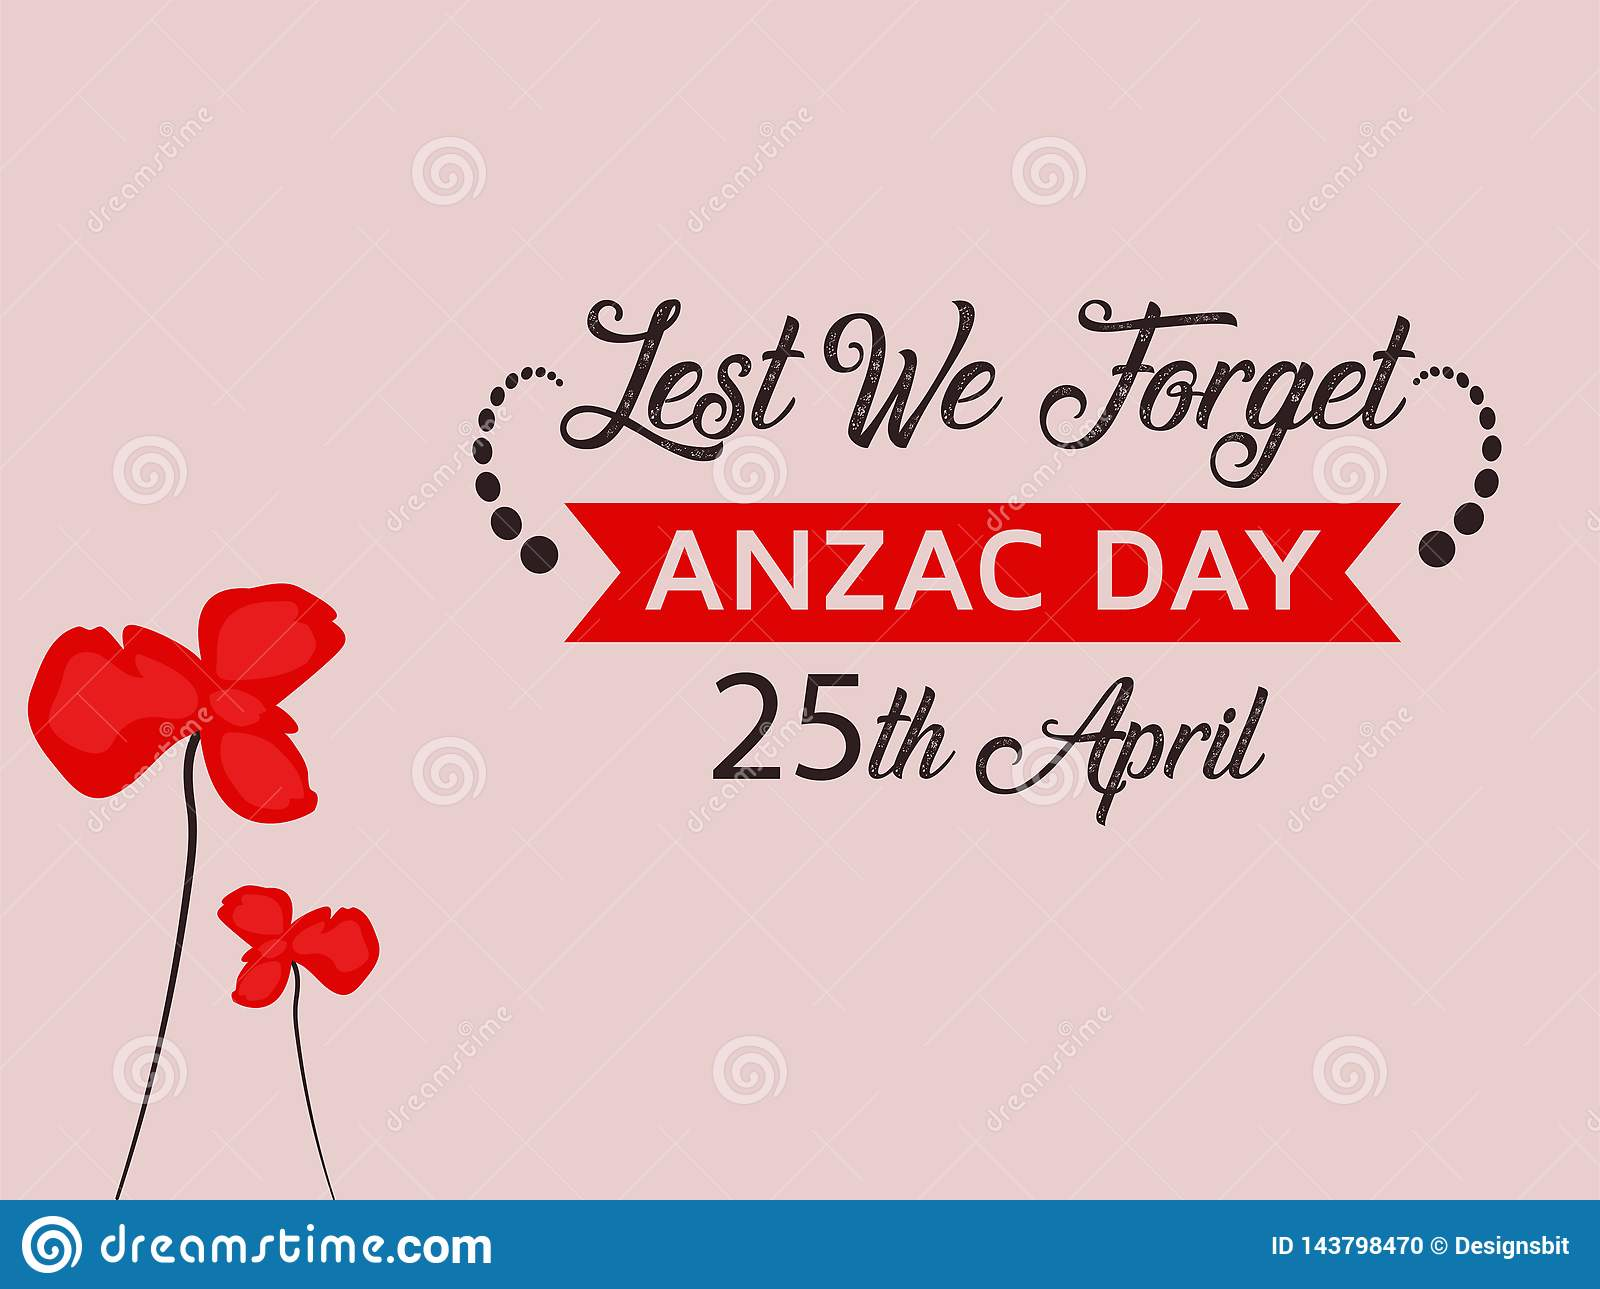 Anzac Day Illustration with nice red poppy flower background